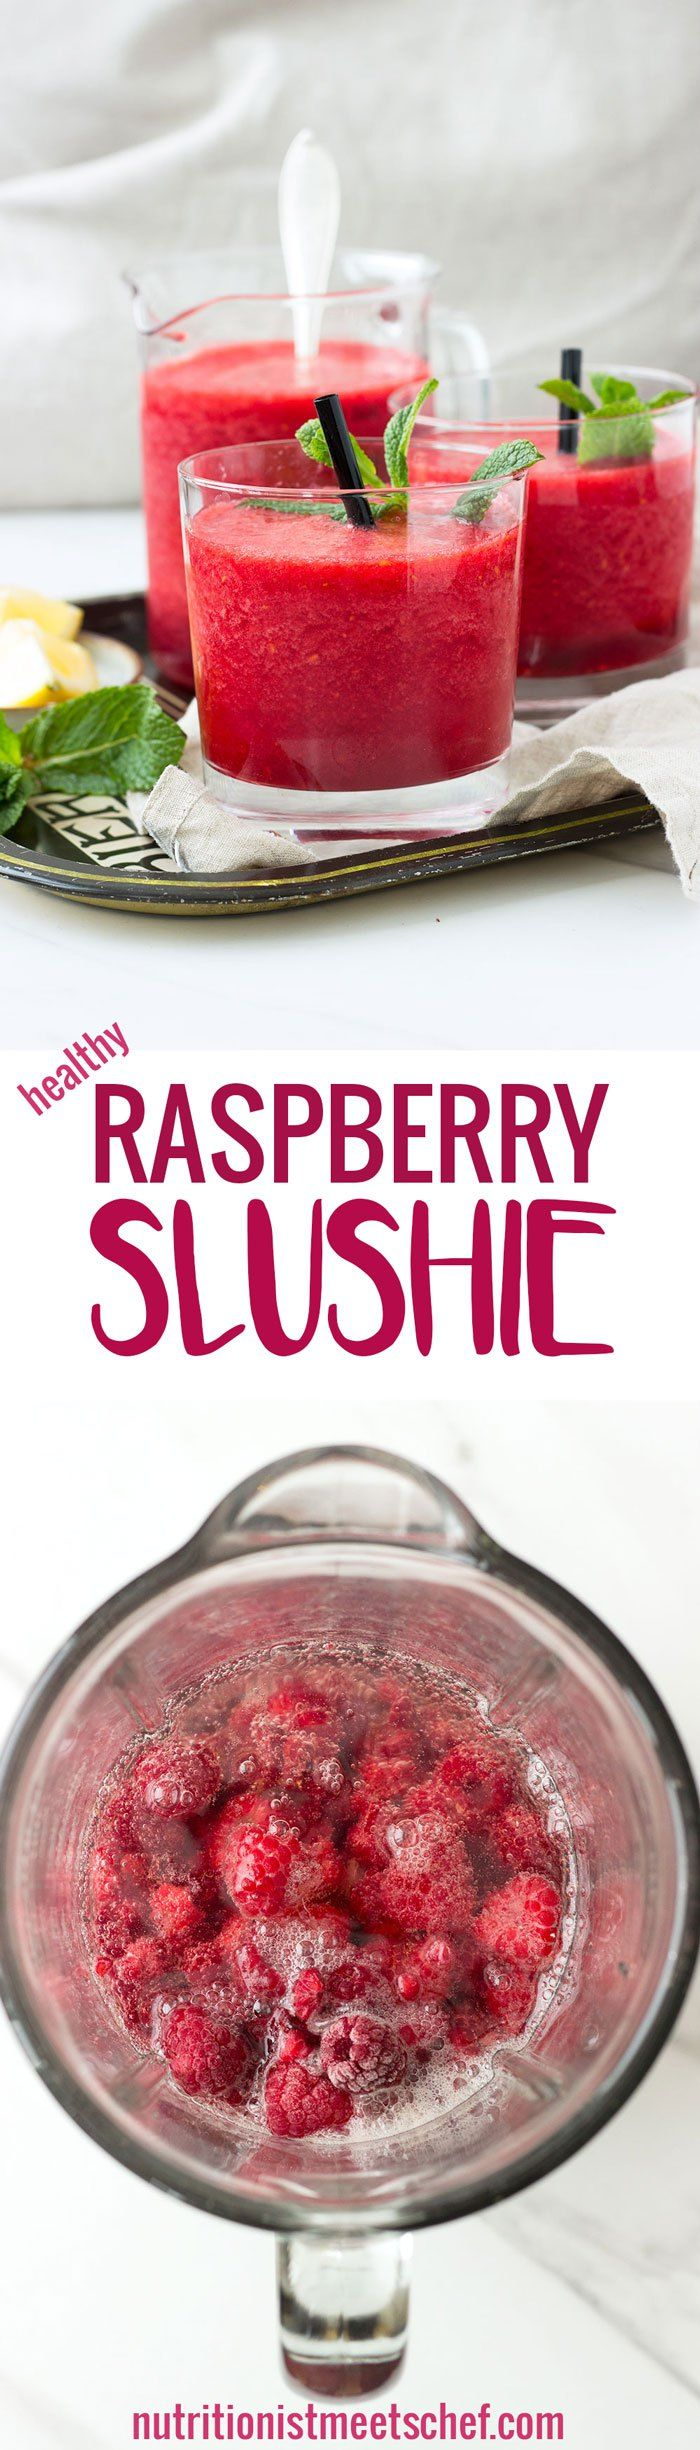 Healthy Raspberry Slushie - Only 4 ingredients are needed to make these healthy slushies that are slightly sweetened with honey! Get the recipe at nutritionistmeetschef.com